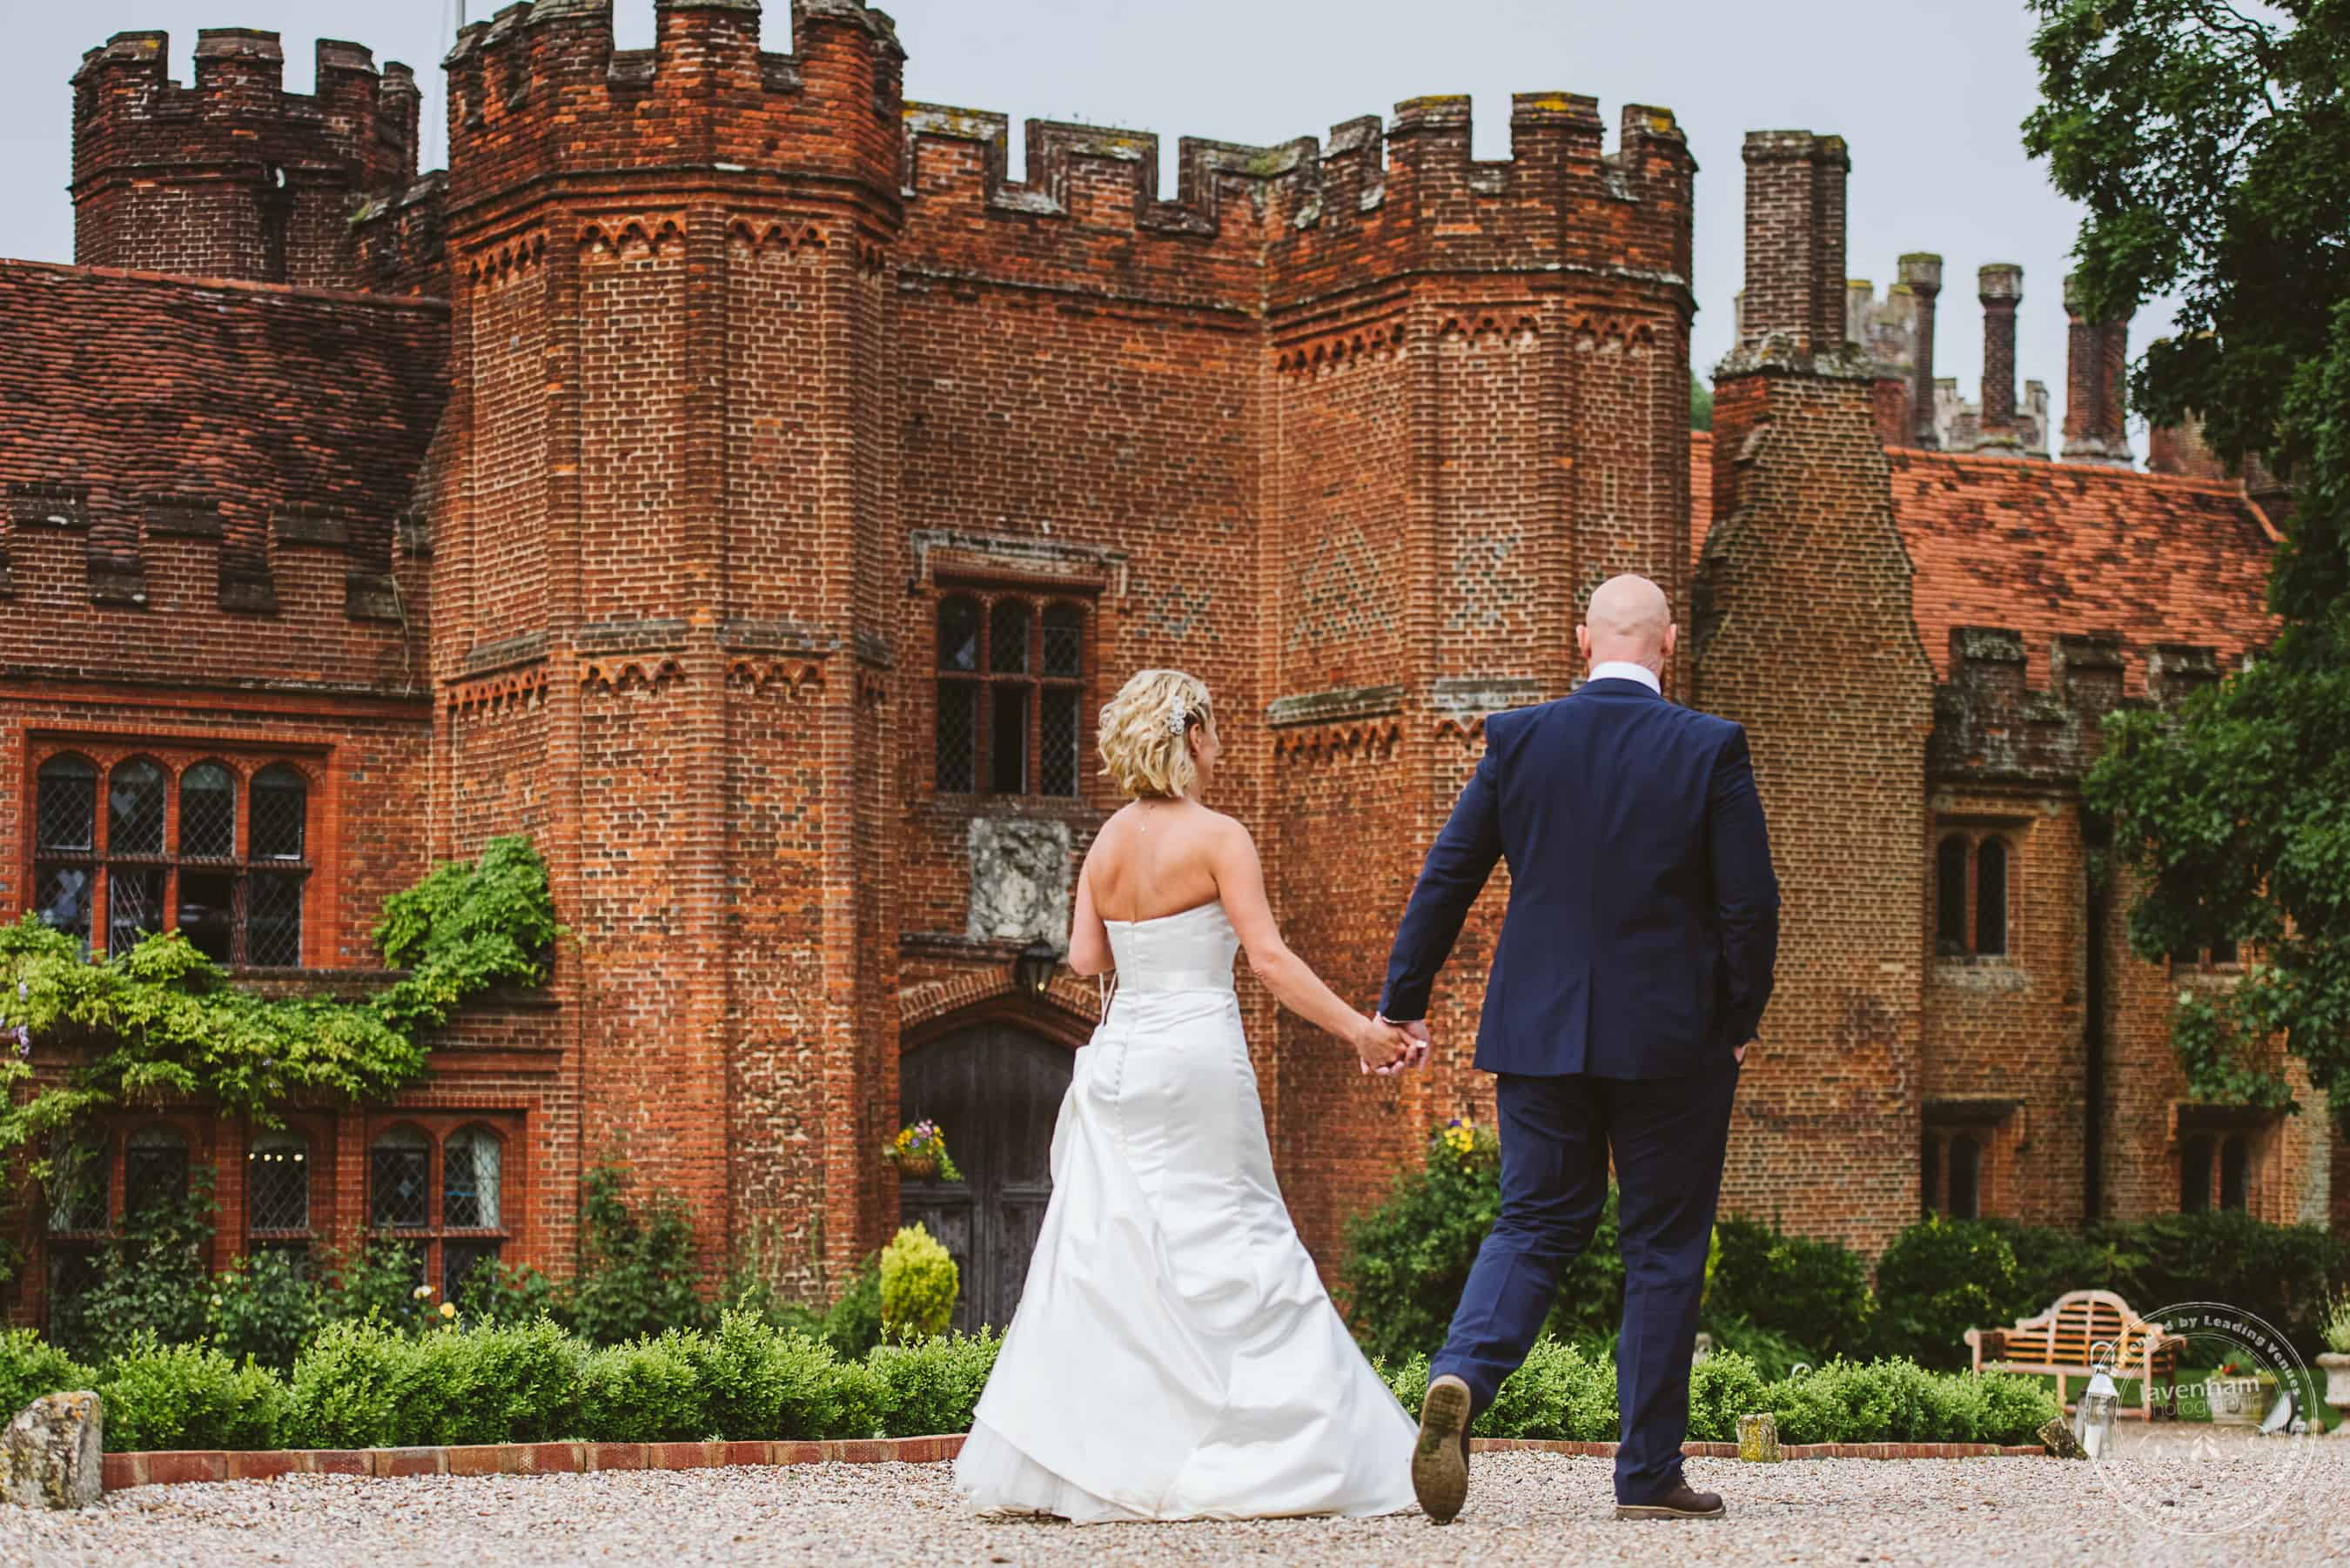 290518 Leez Priory Wedding Photography Lavenham Photographic 135